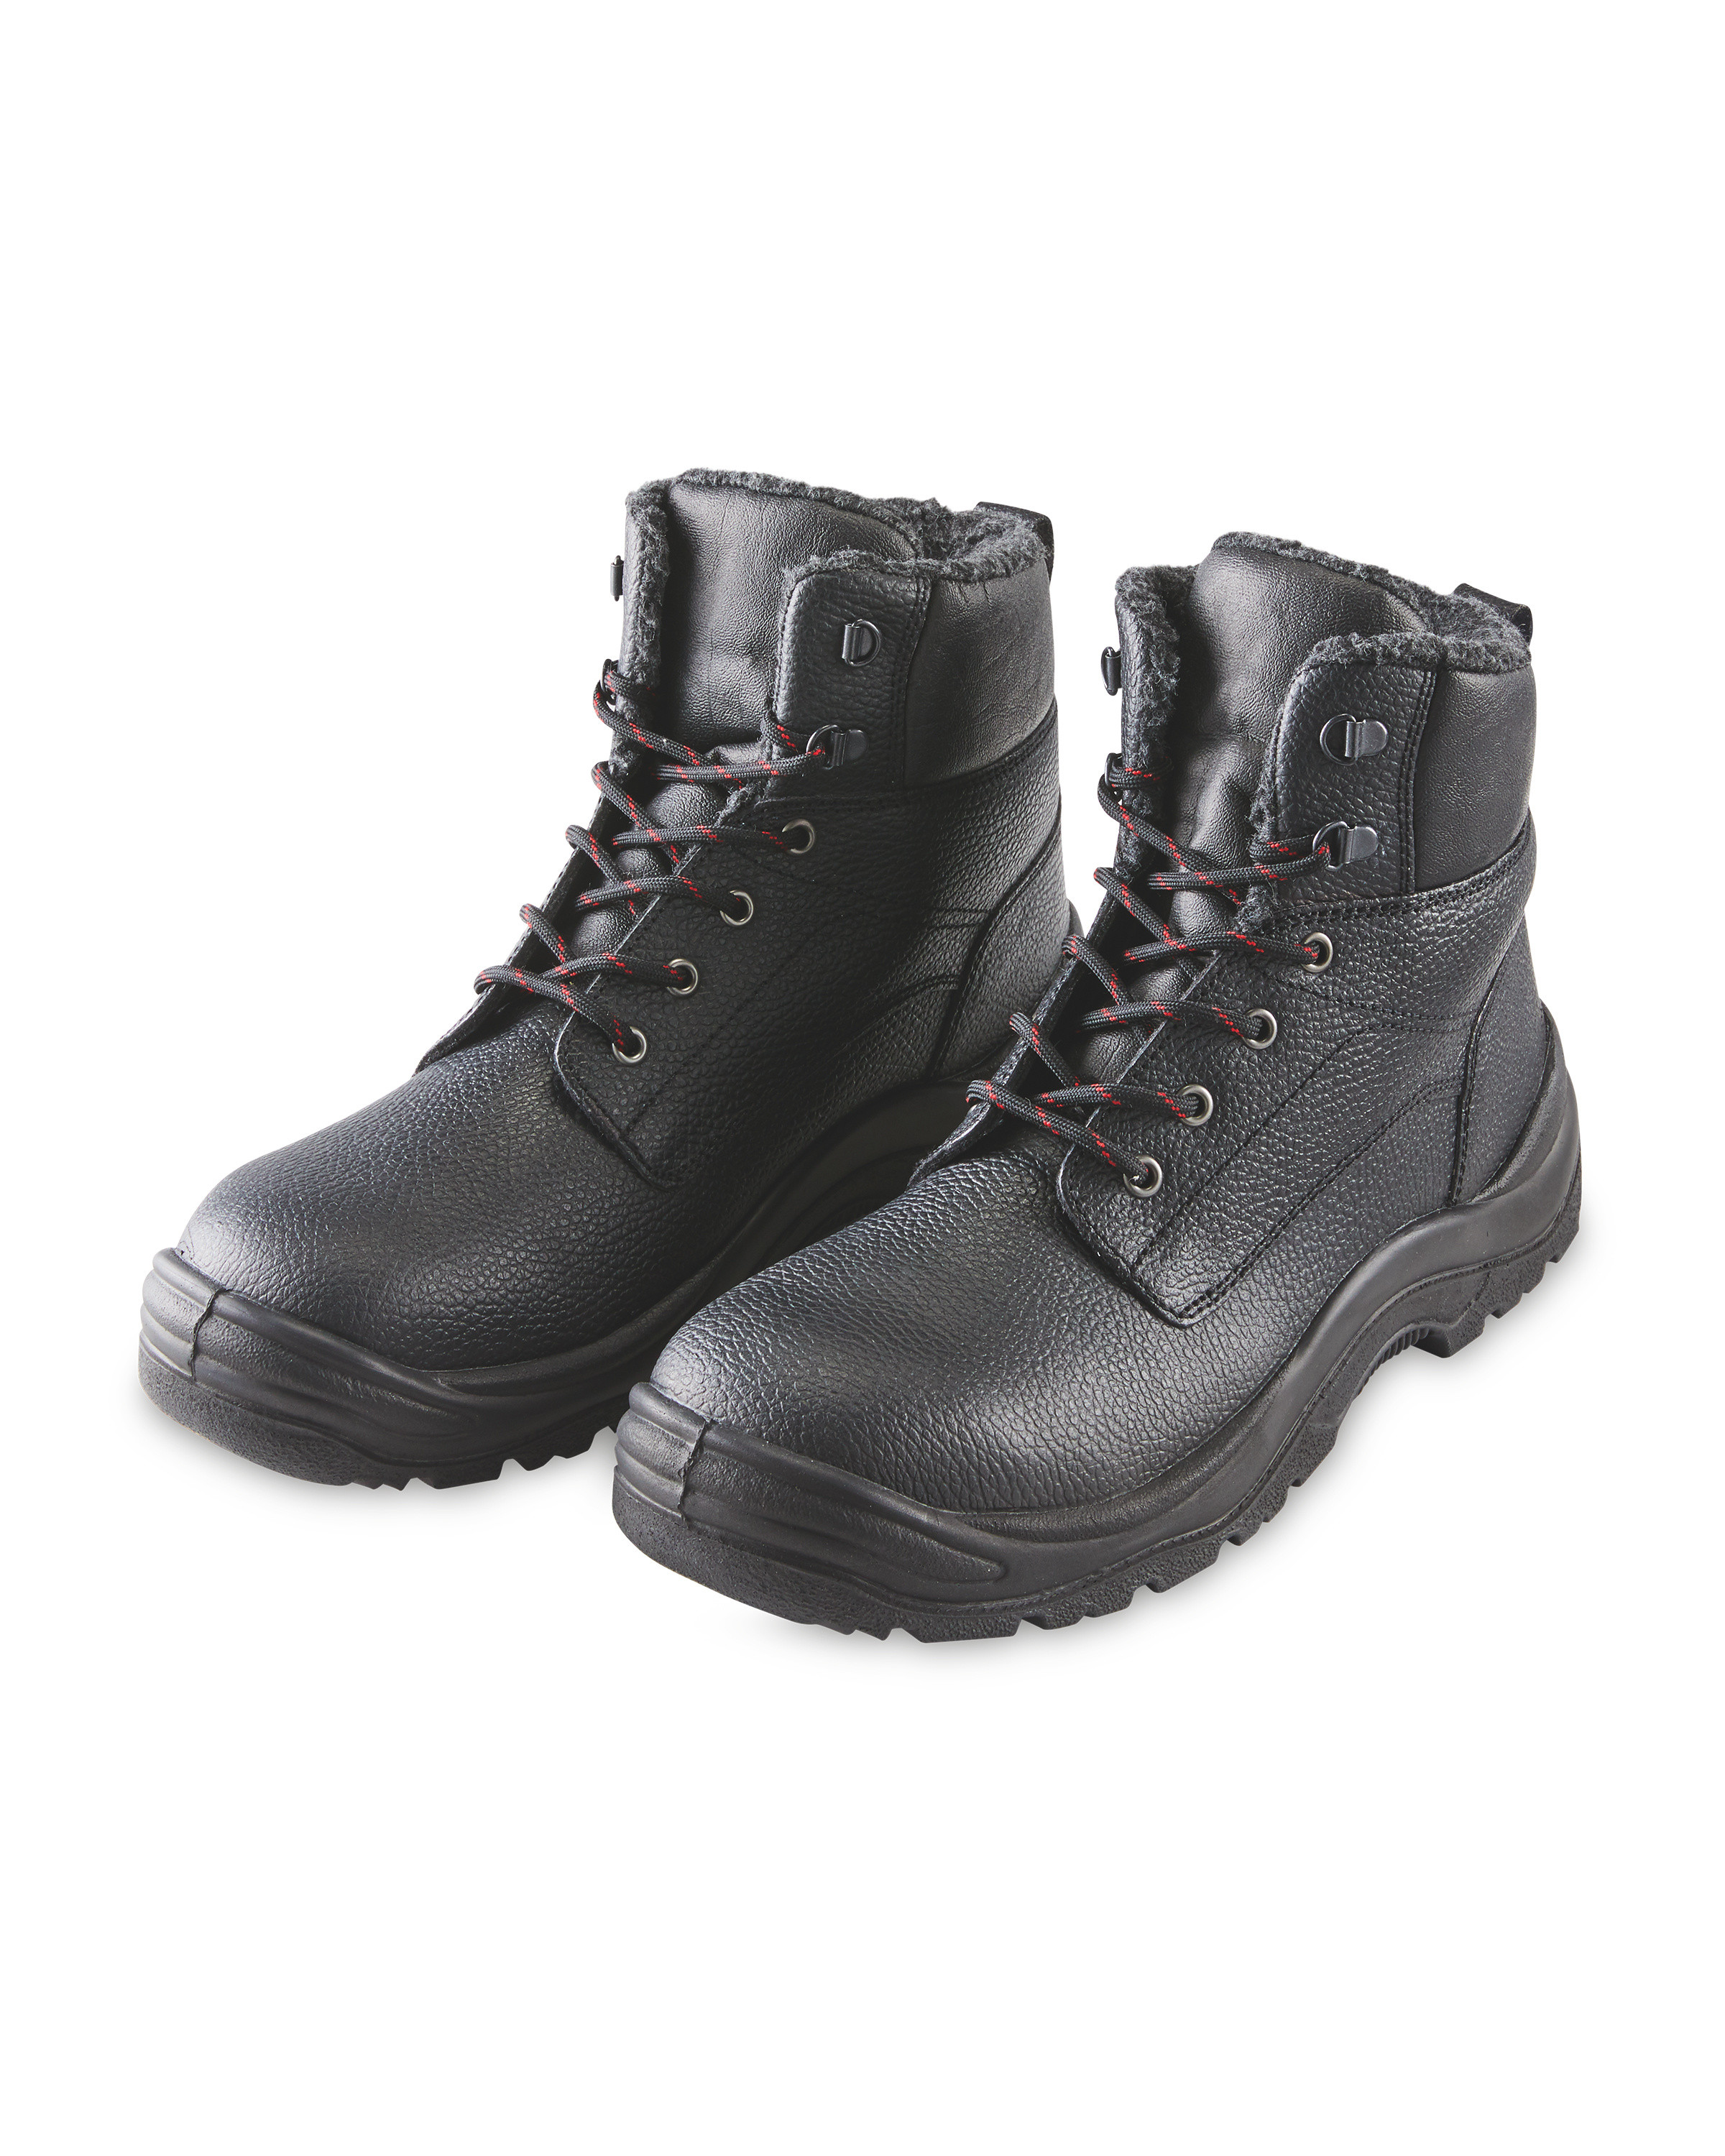 a954aa68fd00 Workwear Pro Leather Safety Boots - ALDI UK